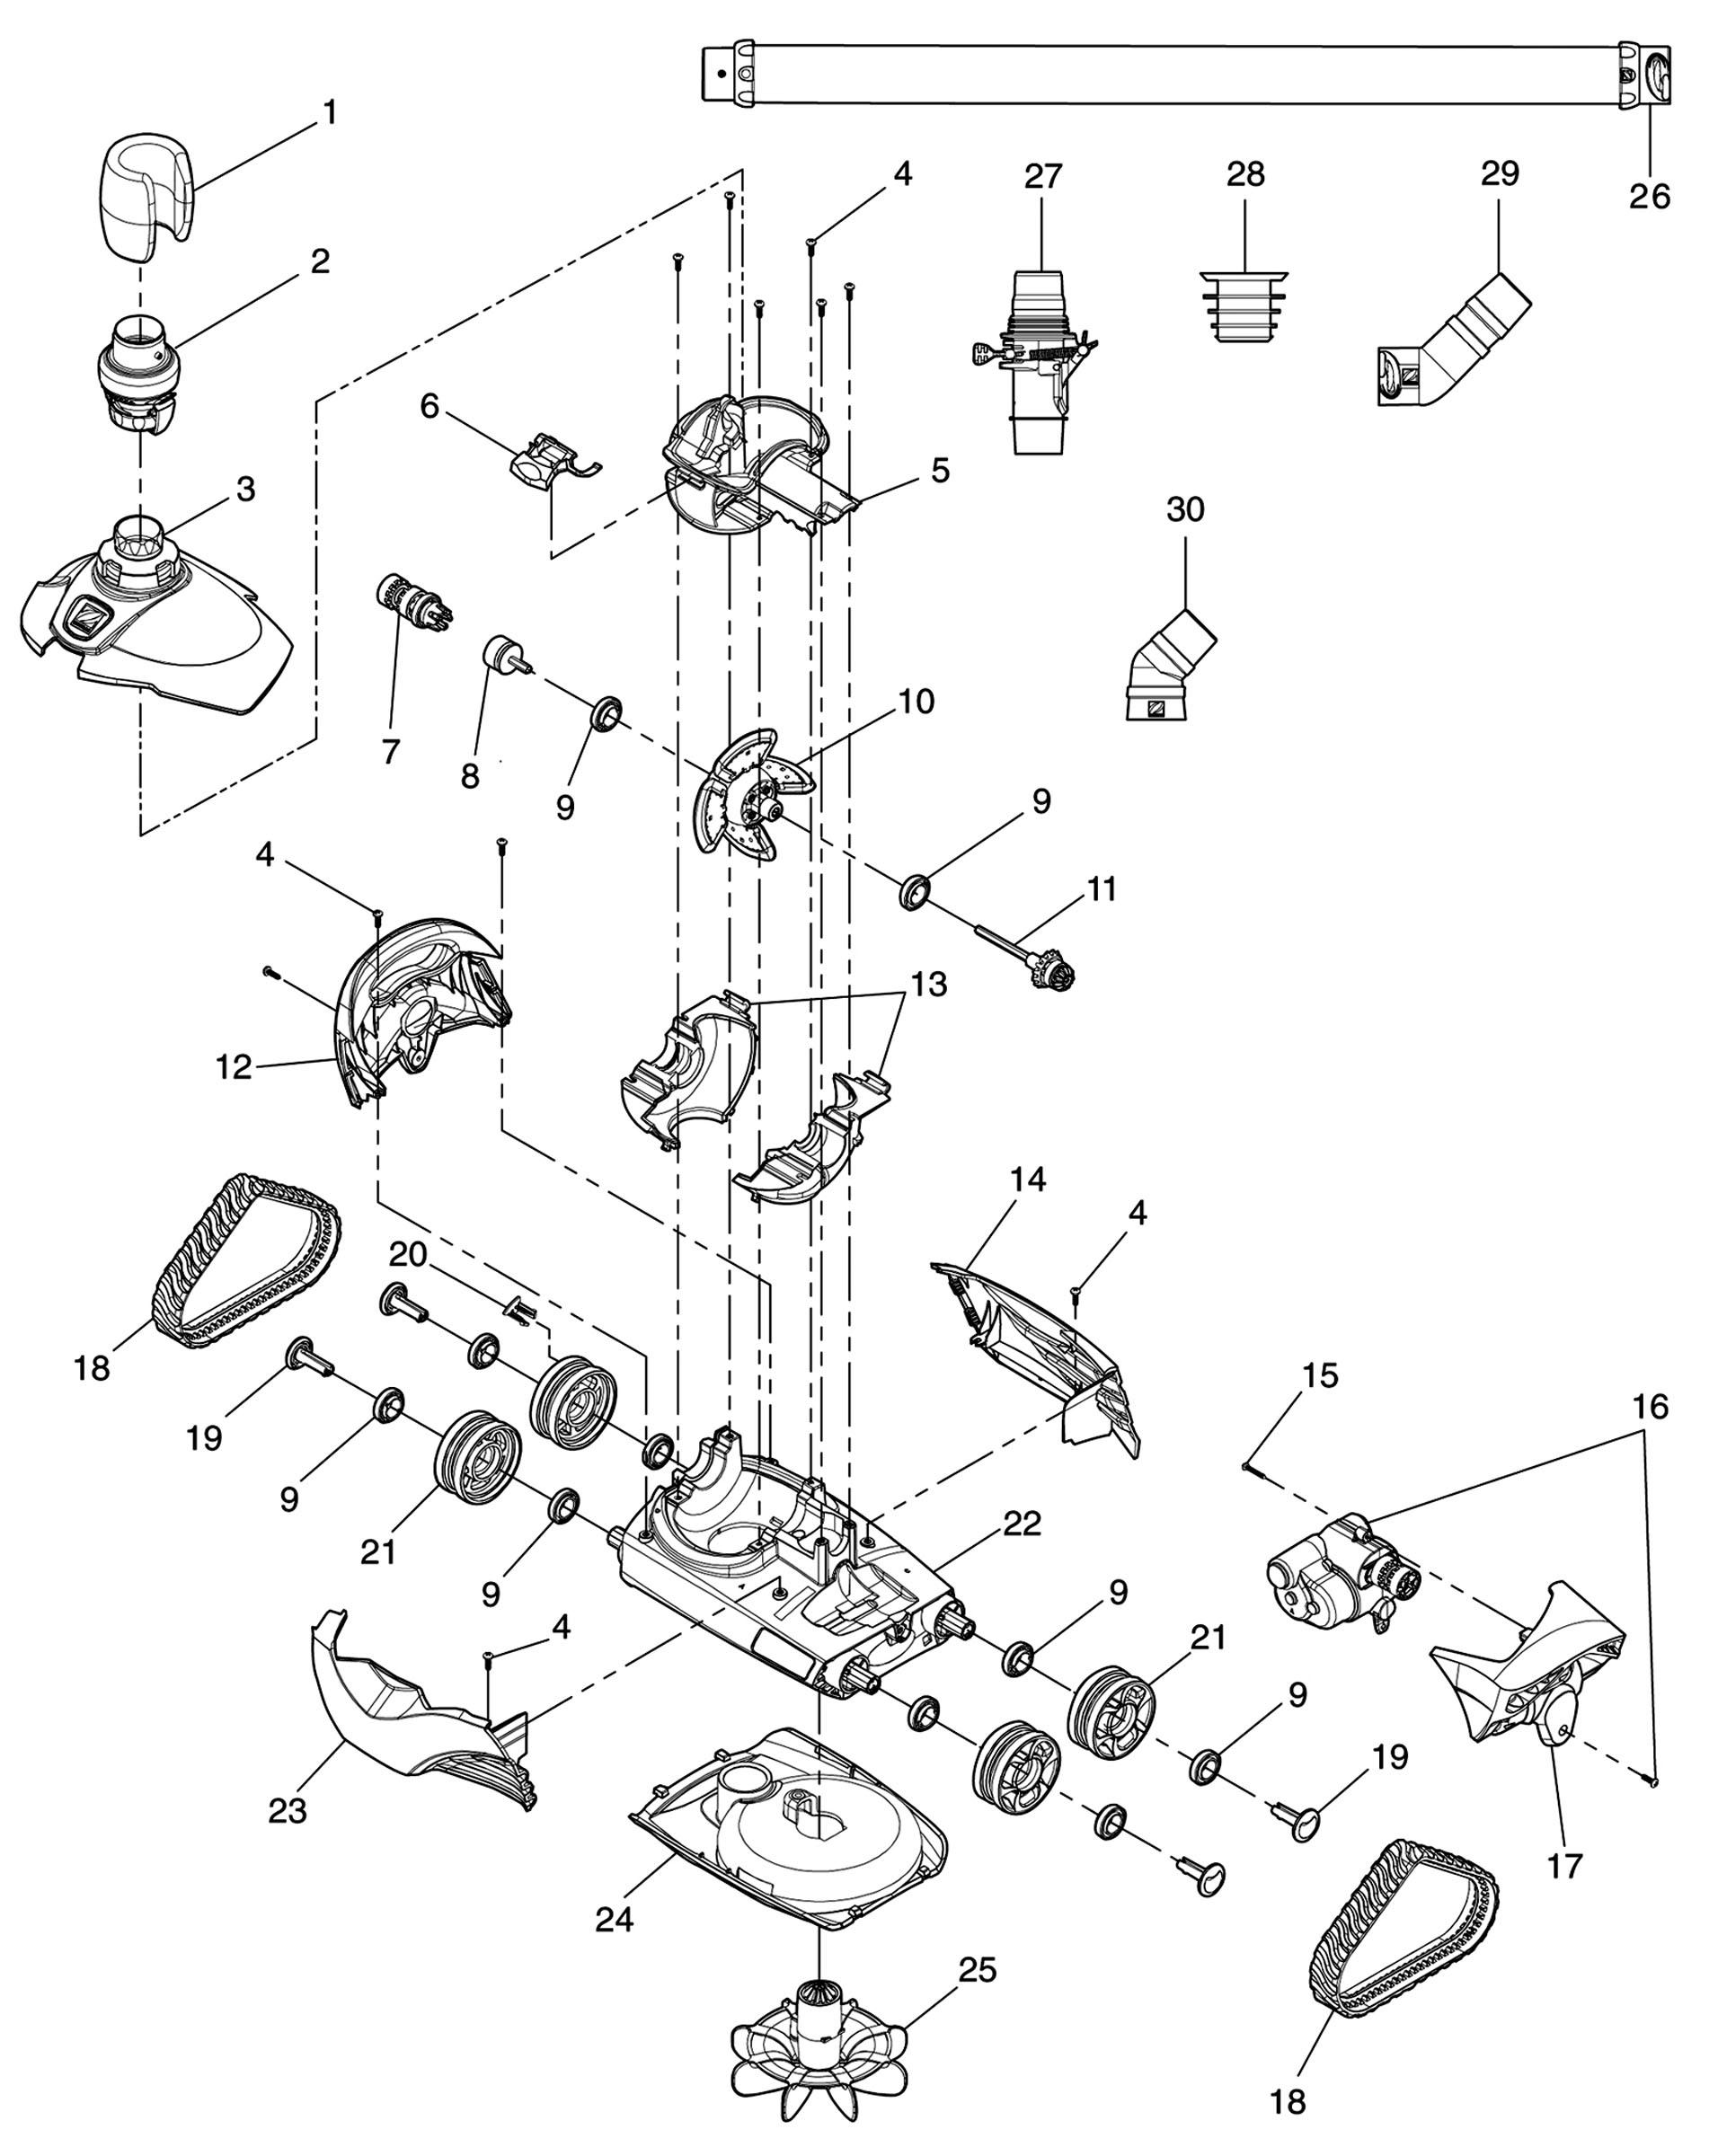 Maytronic Pool Cleaner Wiring Diagram